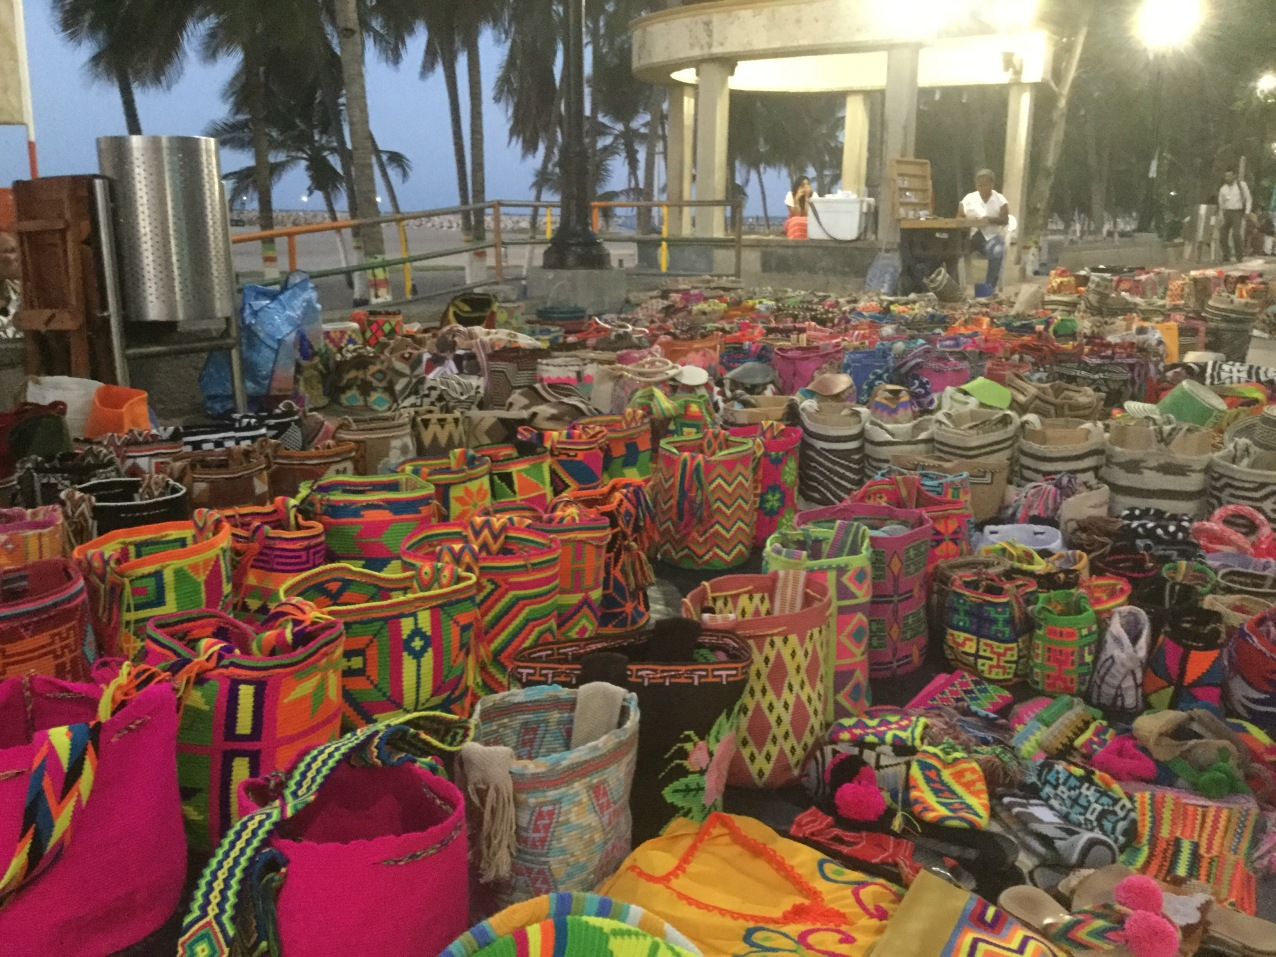 Wayuu mochilas found everywhere on the beach boardwalk